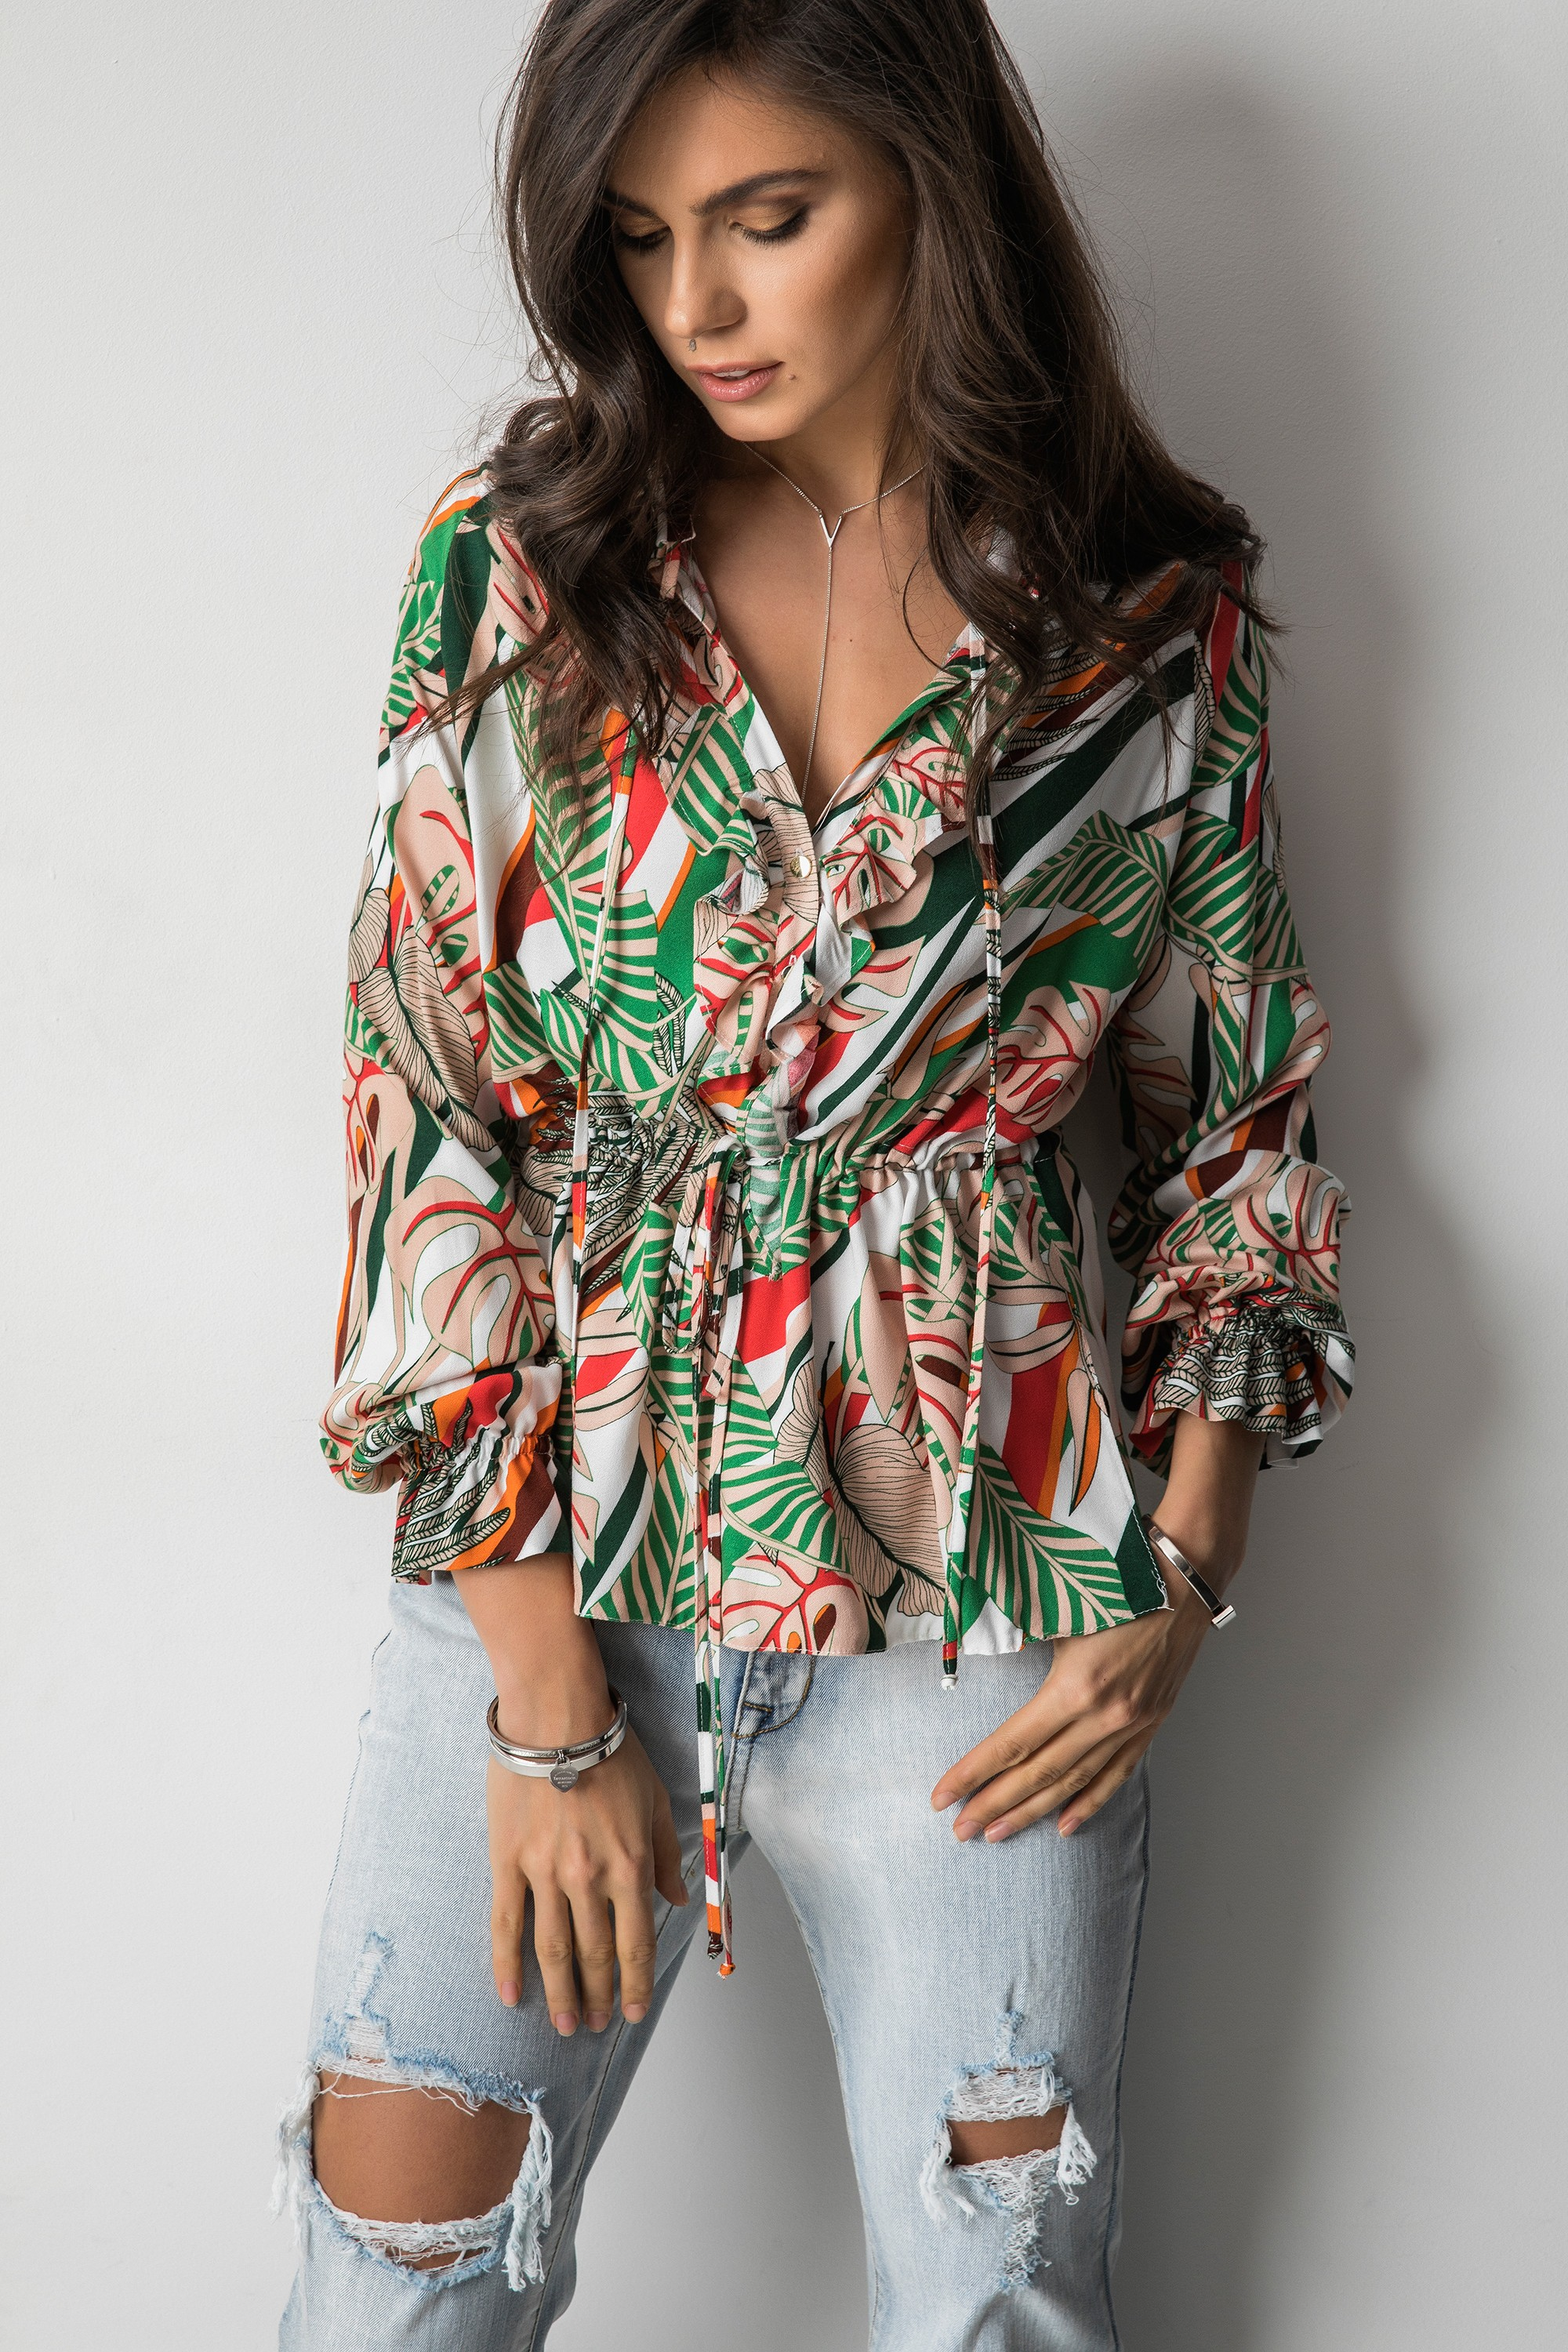 Pennie Bluzka Tropical Print